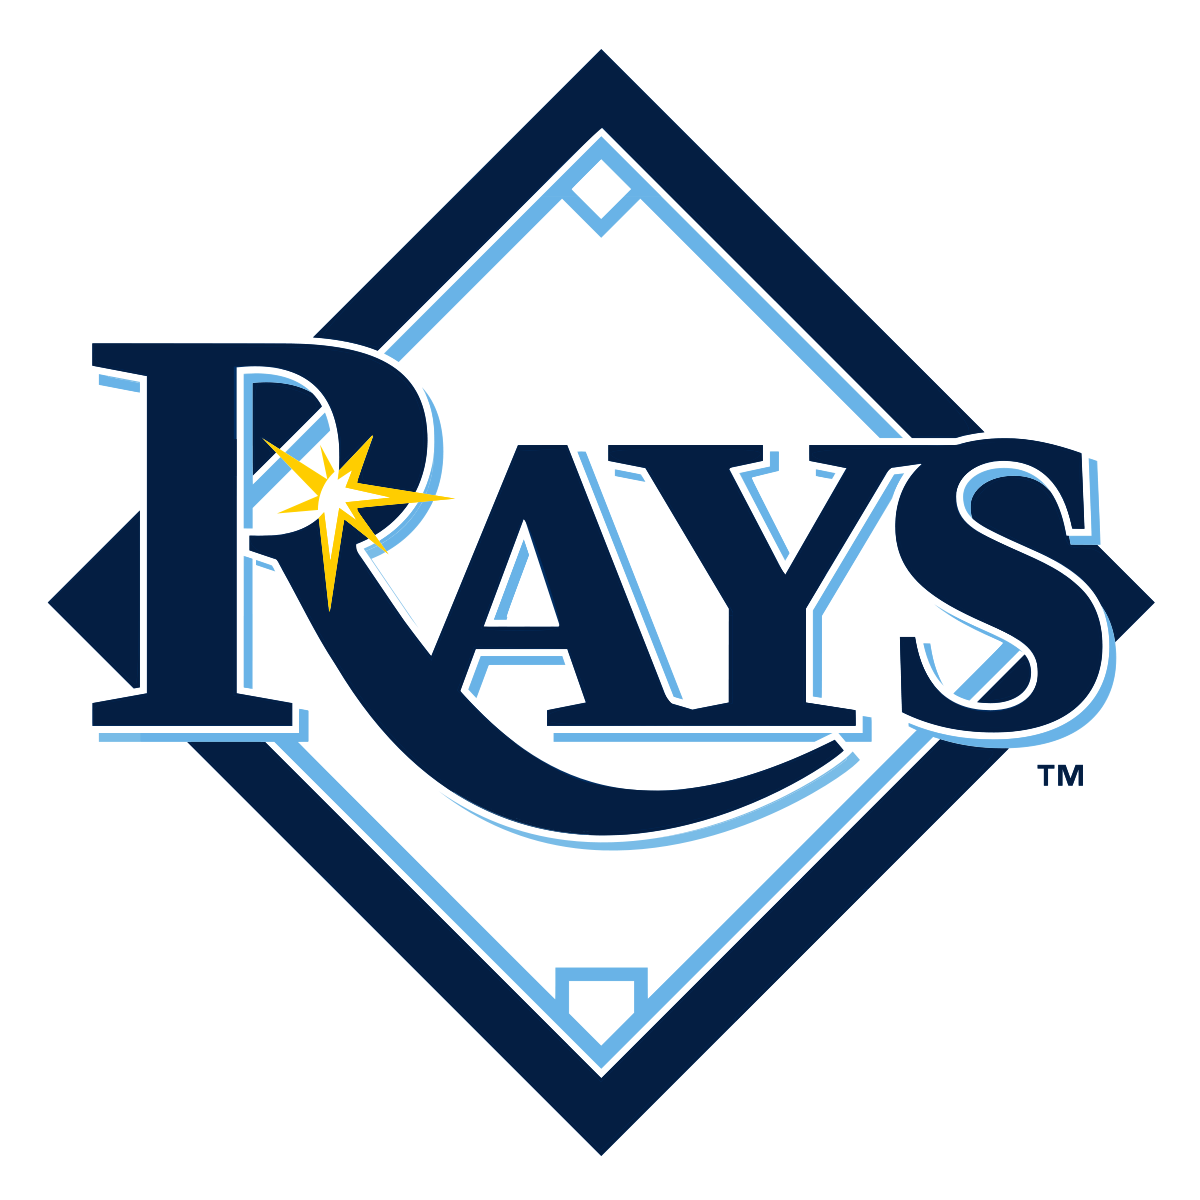 1200px-Tampa_Bay_Rays.svg